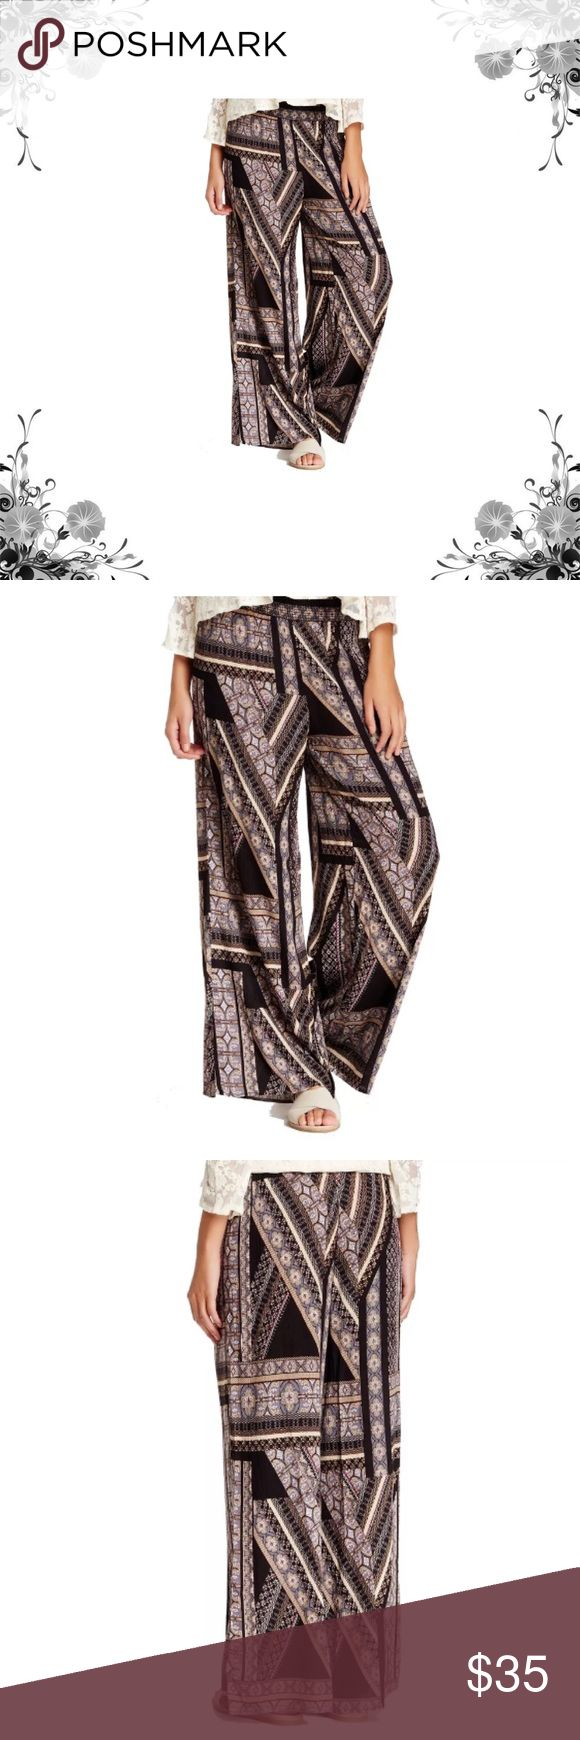 ASTR Printed Palazzo Pants Casual pants. Rayon. A mixed-pattern palazzo pant made from airy rayon fabric in a breezy, wide leg silhouette. Smocked waist. Allover print. Wide leg. Bundle for discounts! Thank you for shopping my closet! ASTR Pants Wide Leg